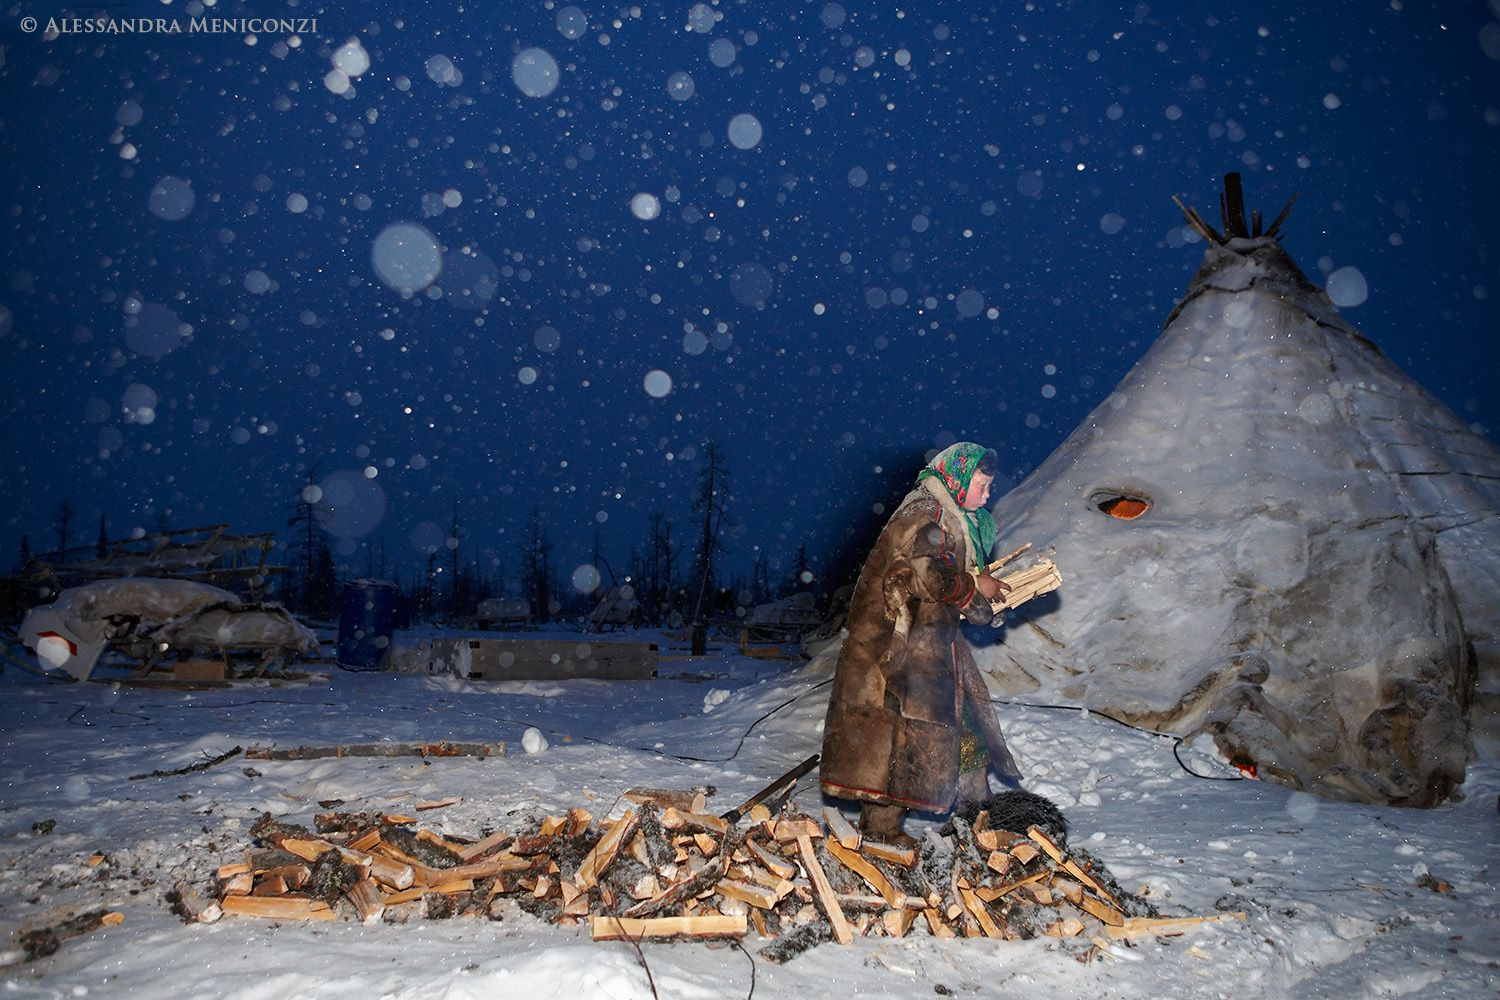 A young Nenet woman prepares firewood at her family's winter camp.